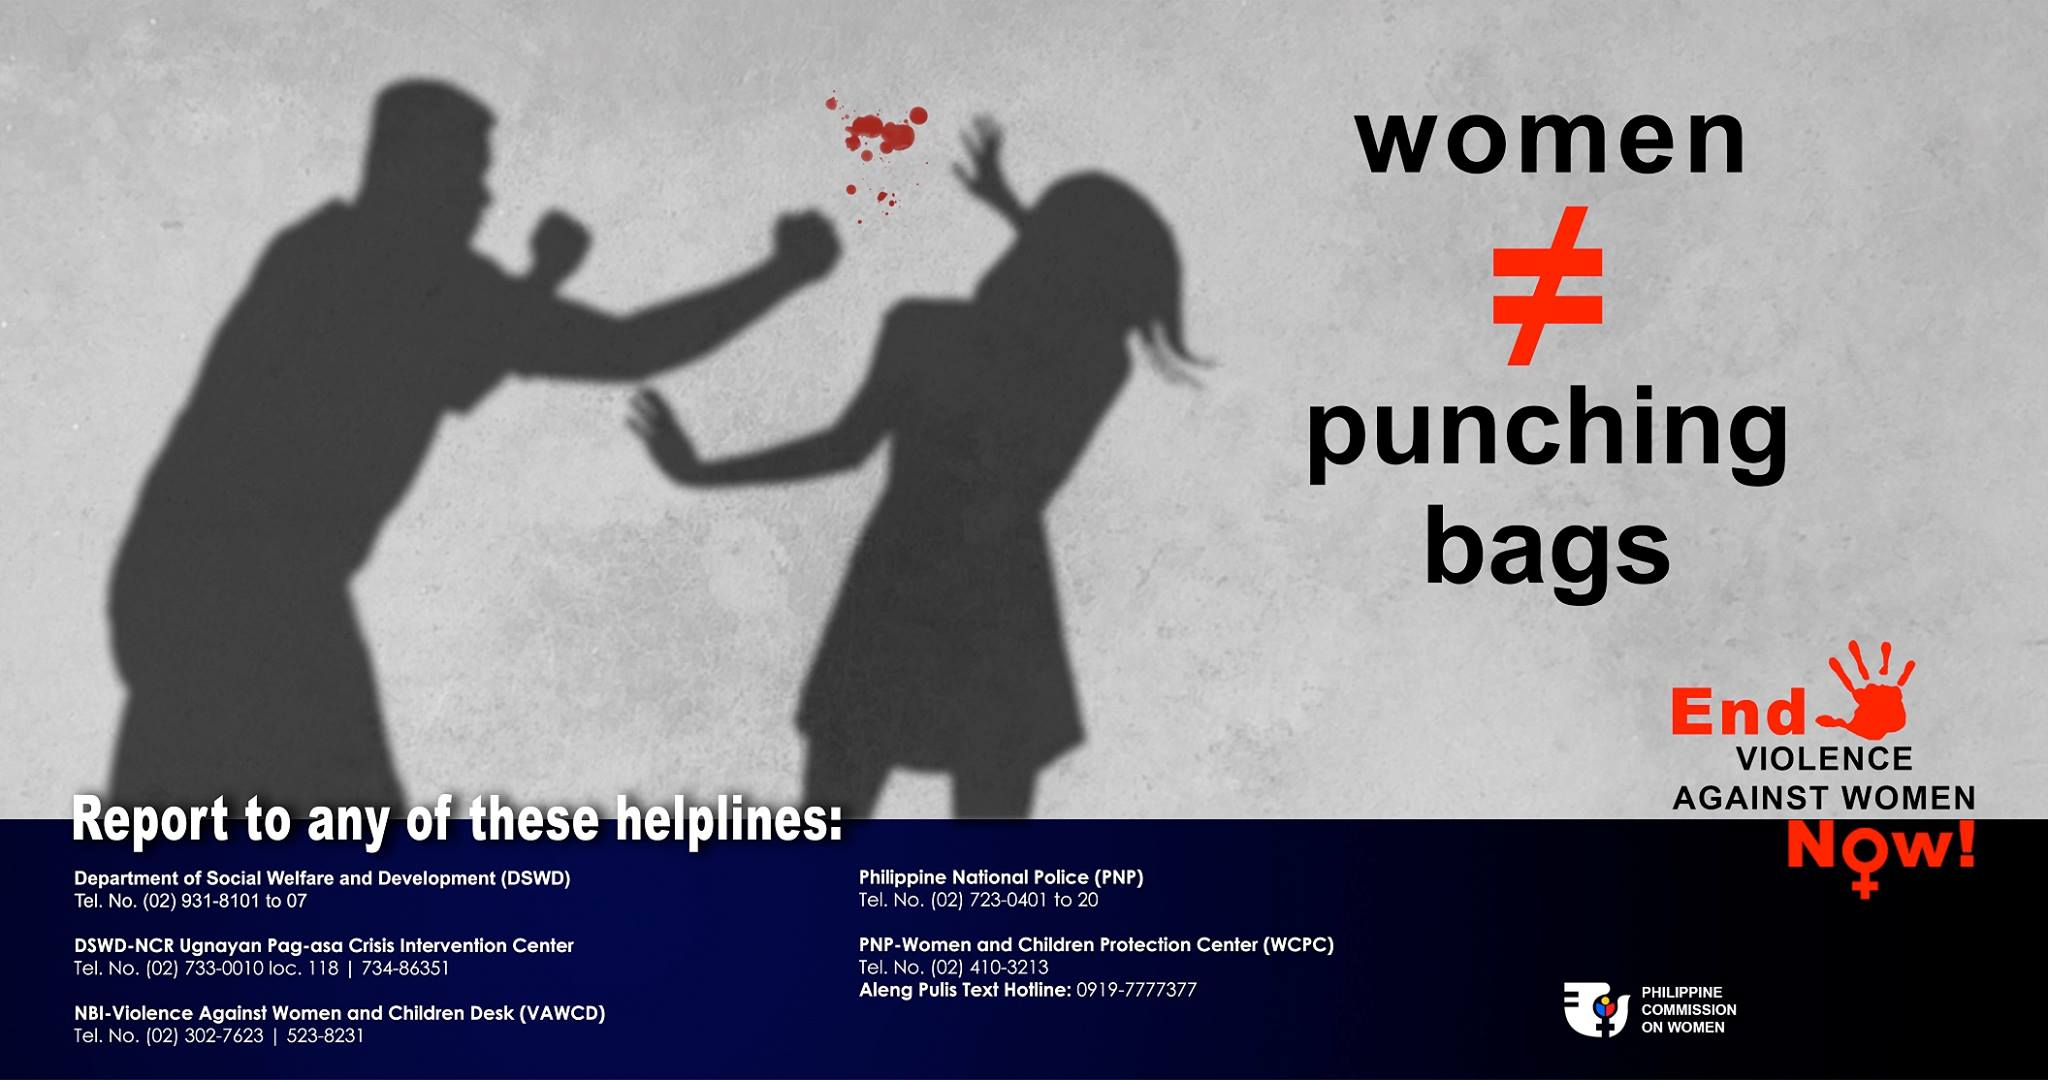 POSTER - PHILIPPINE COMMISSION ON WOMEN